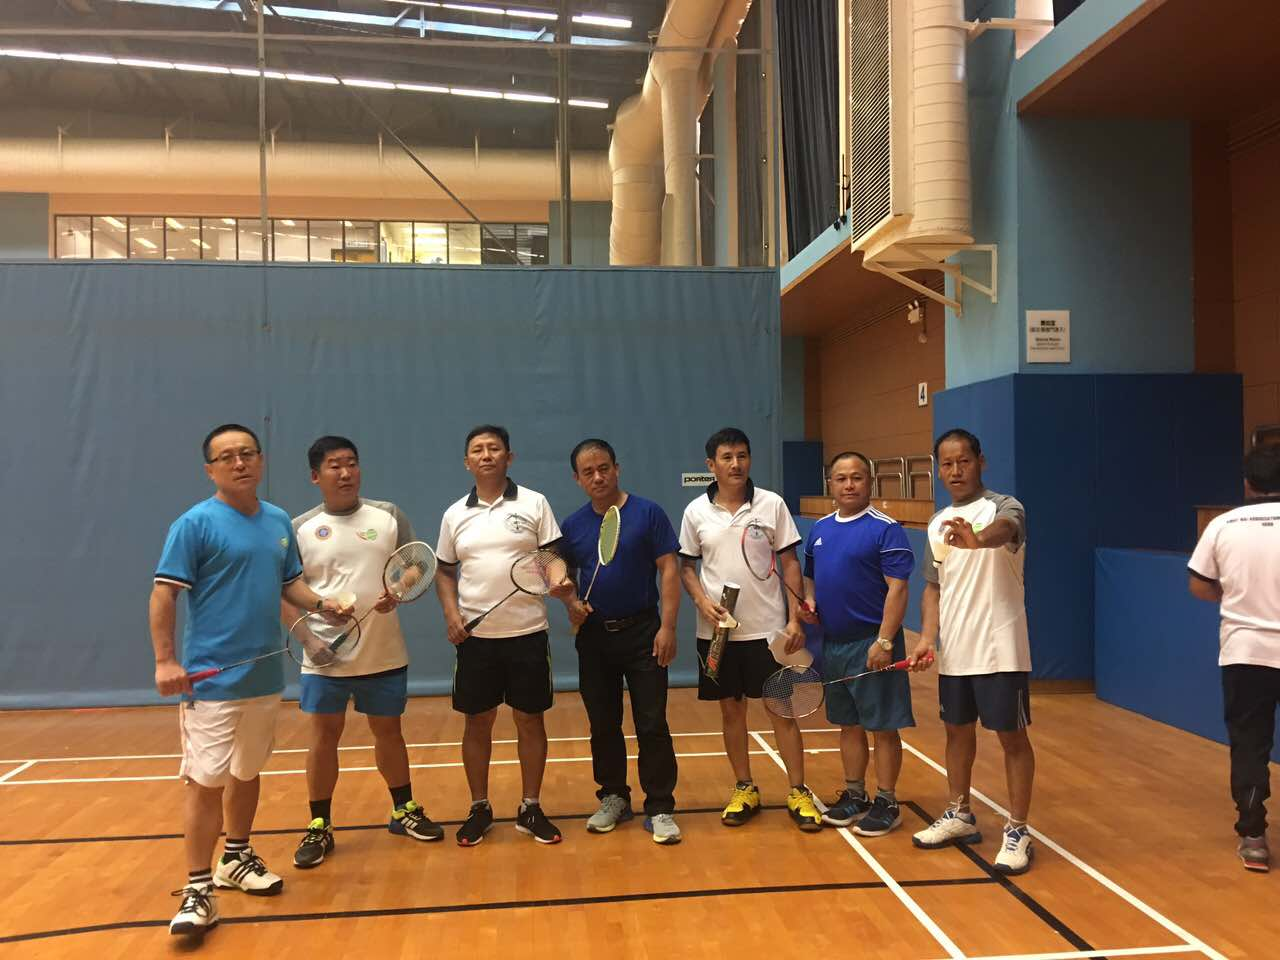 Badminton Photo Seniour